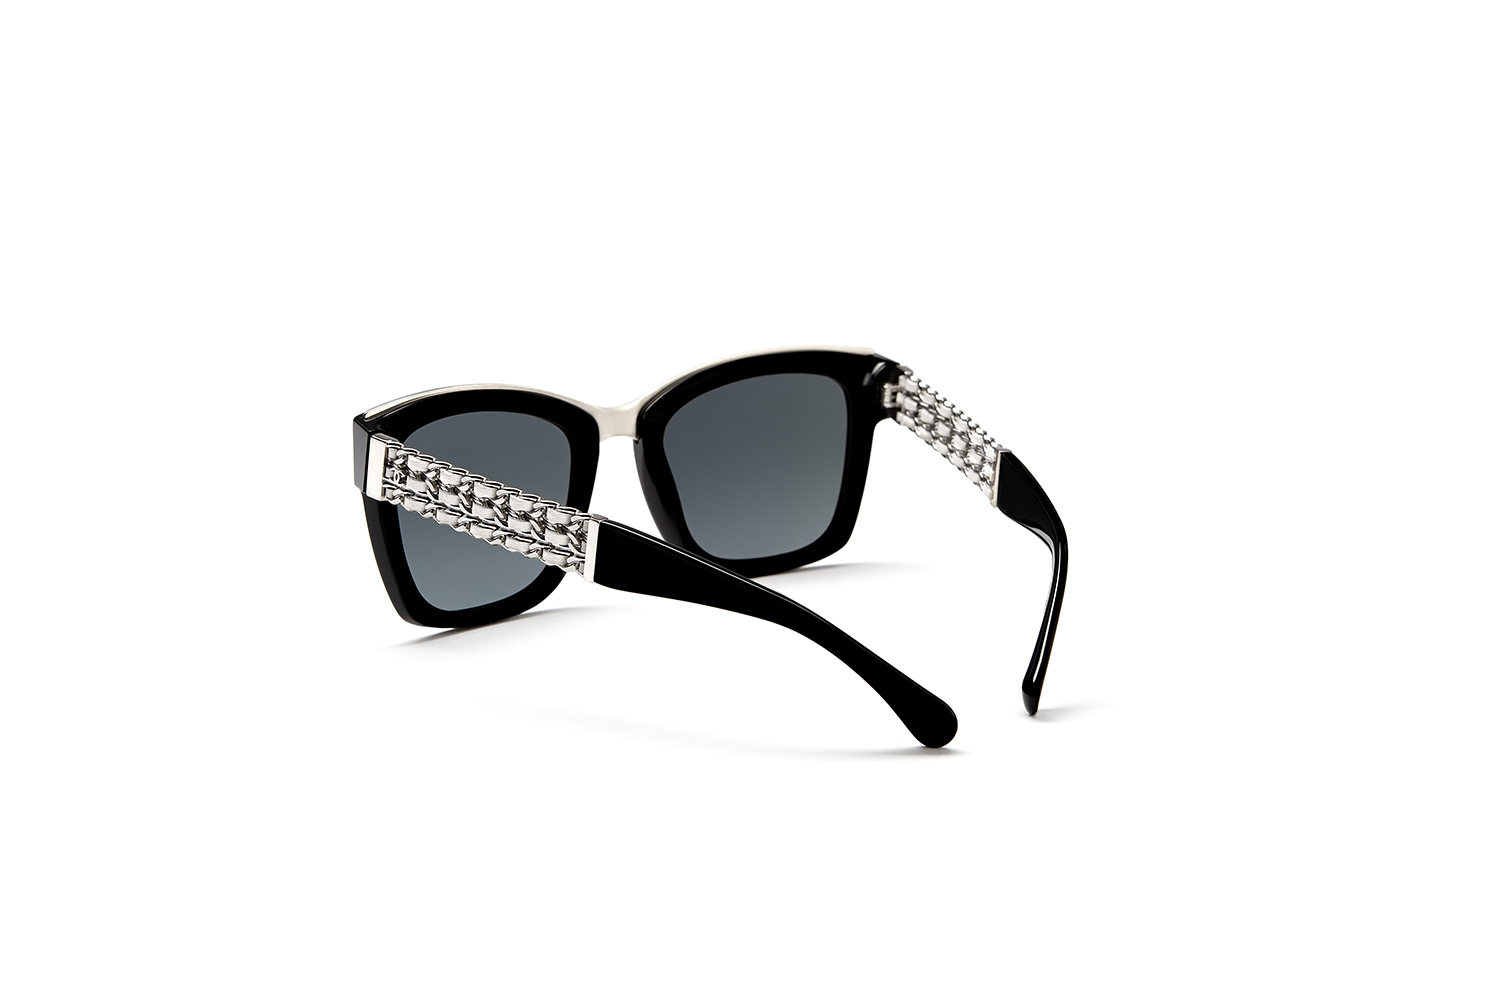 Chanel Coco Chain eyewear Fashionela 1